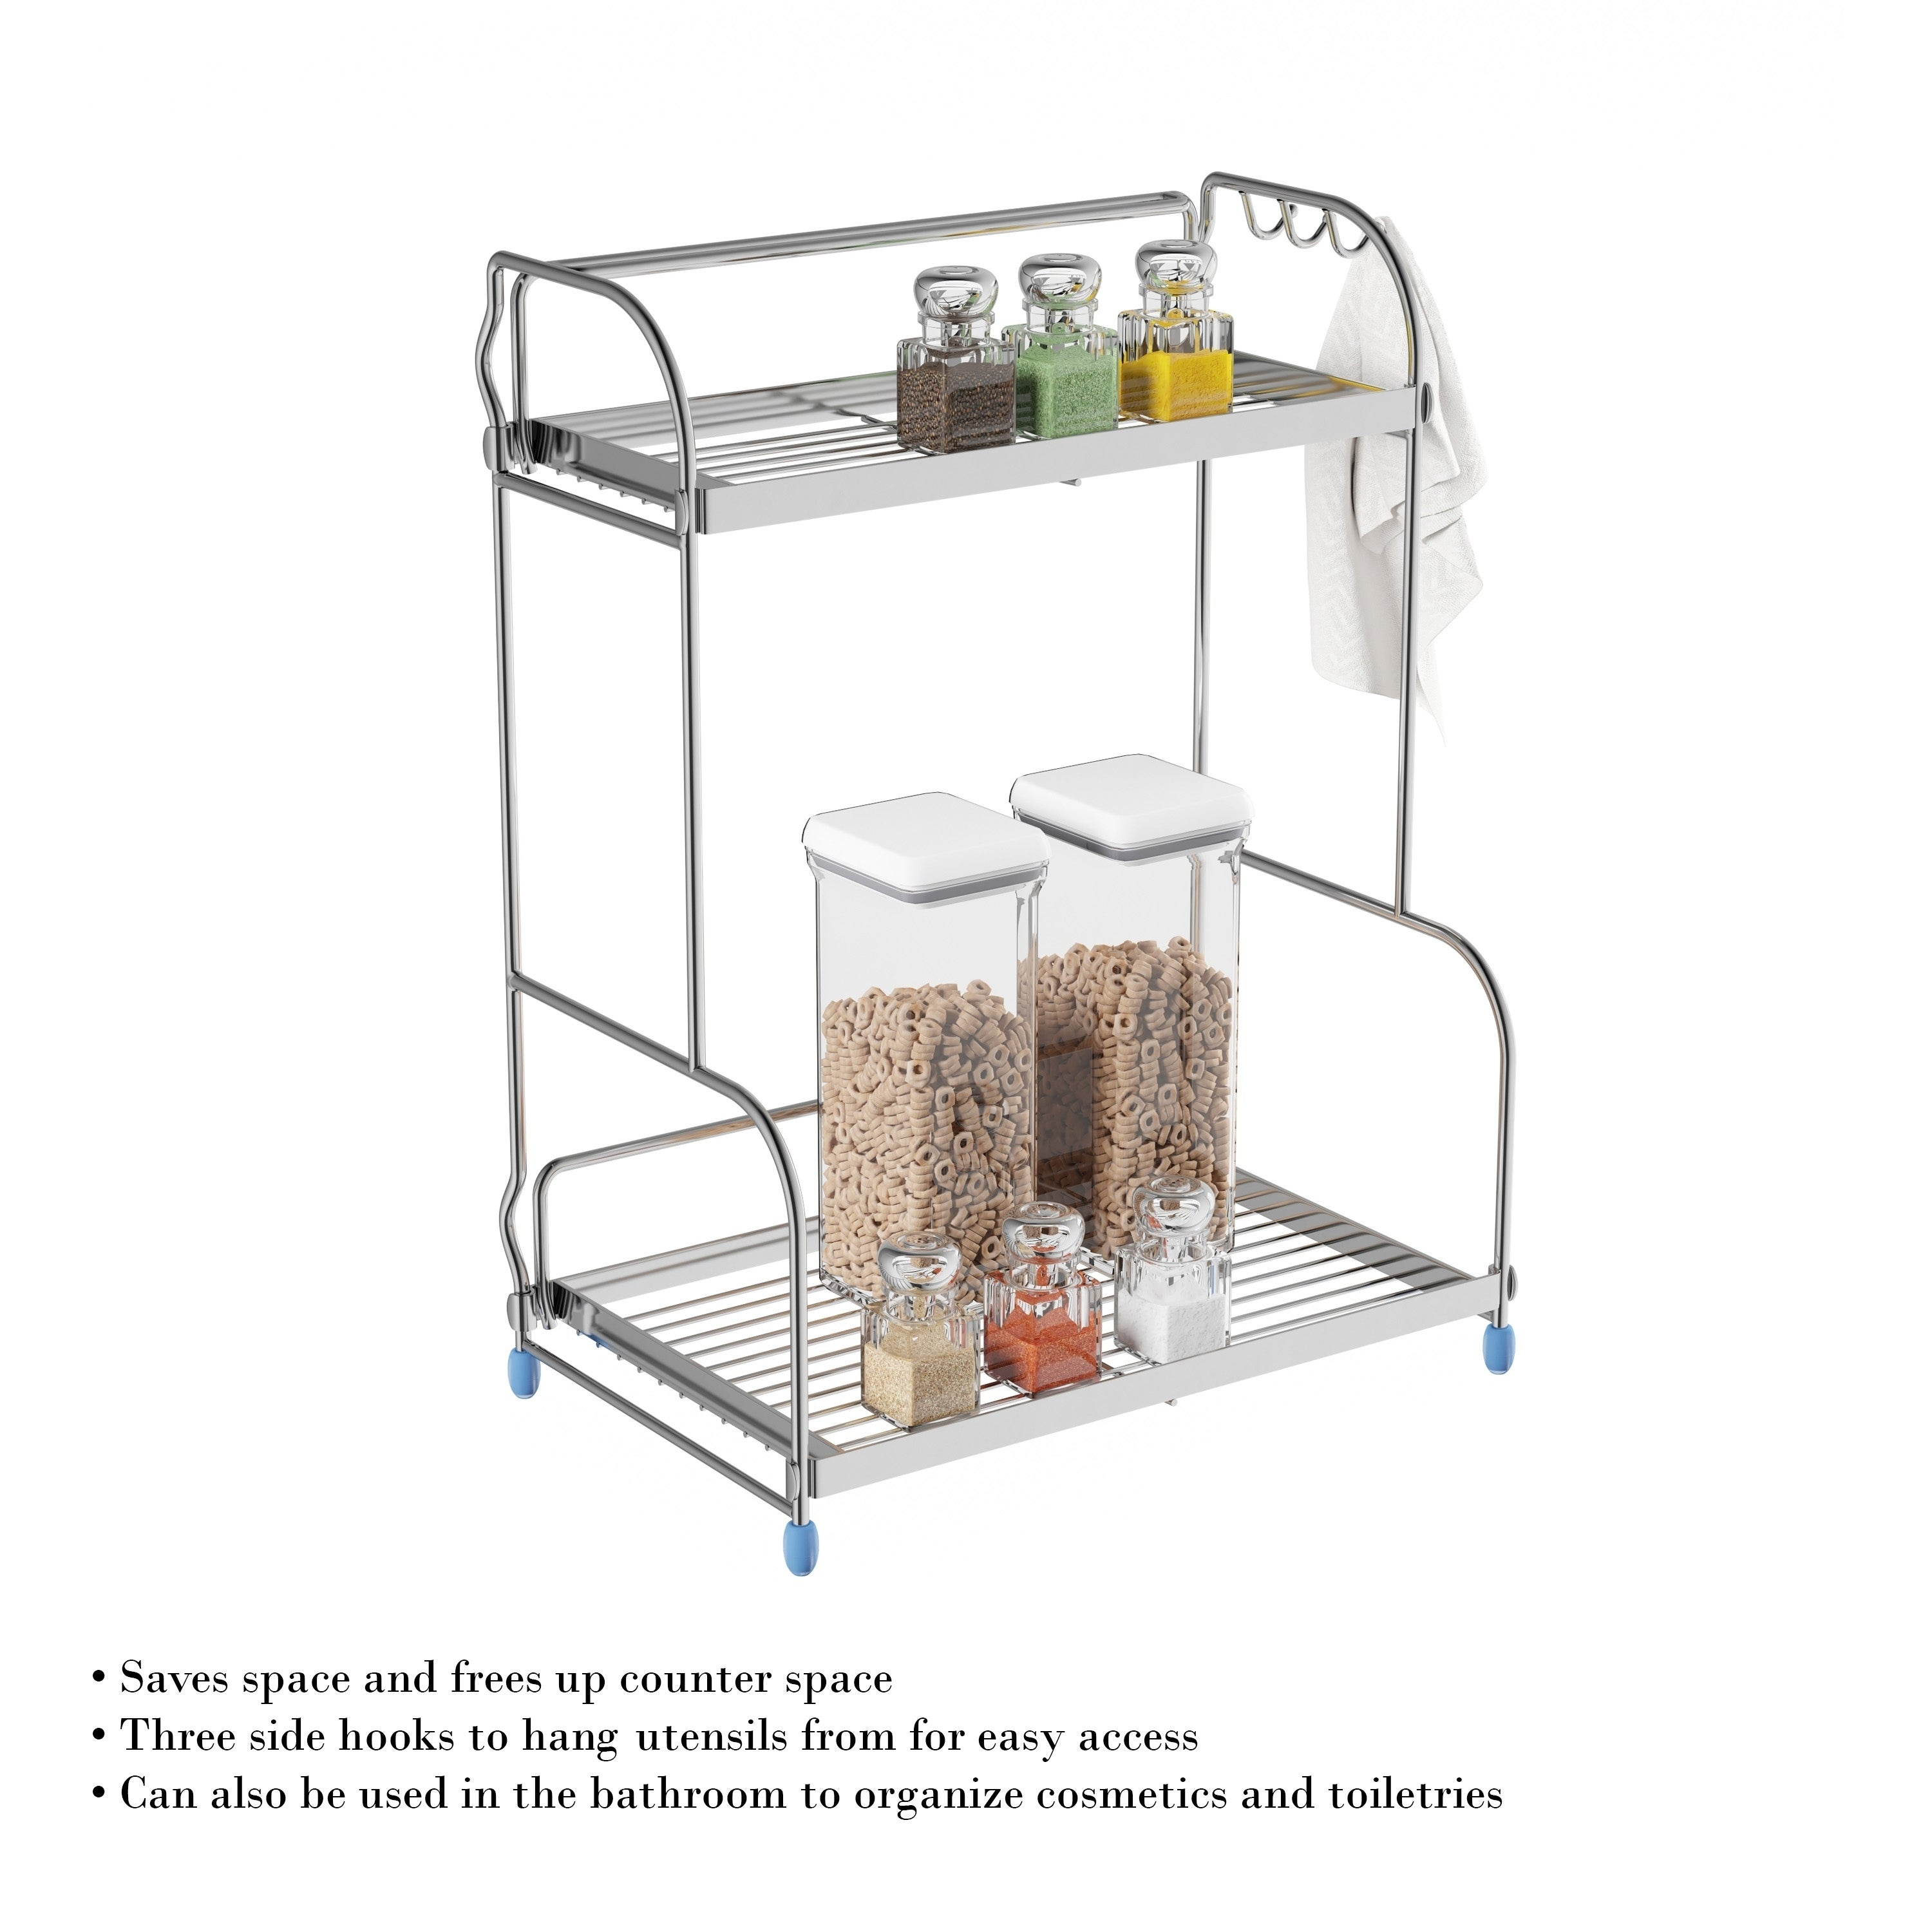 Outstanding 2 Tiered Countertop Storage Shelves With 3 Side Hook By Lavish Home Interior Design Ideas Clesiryabchikinfo